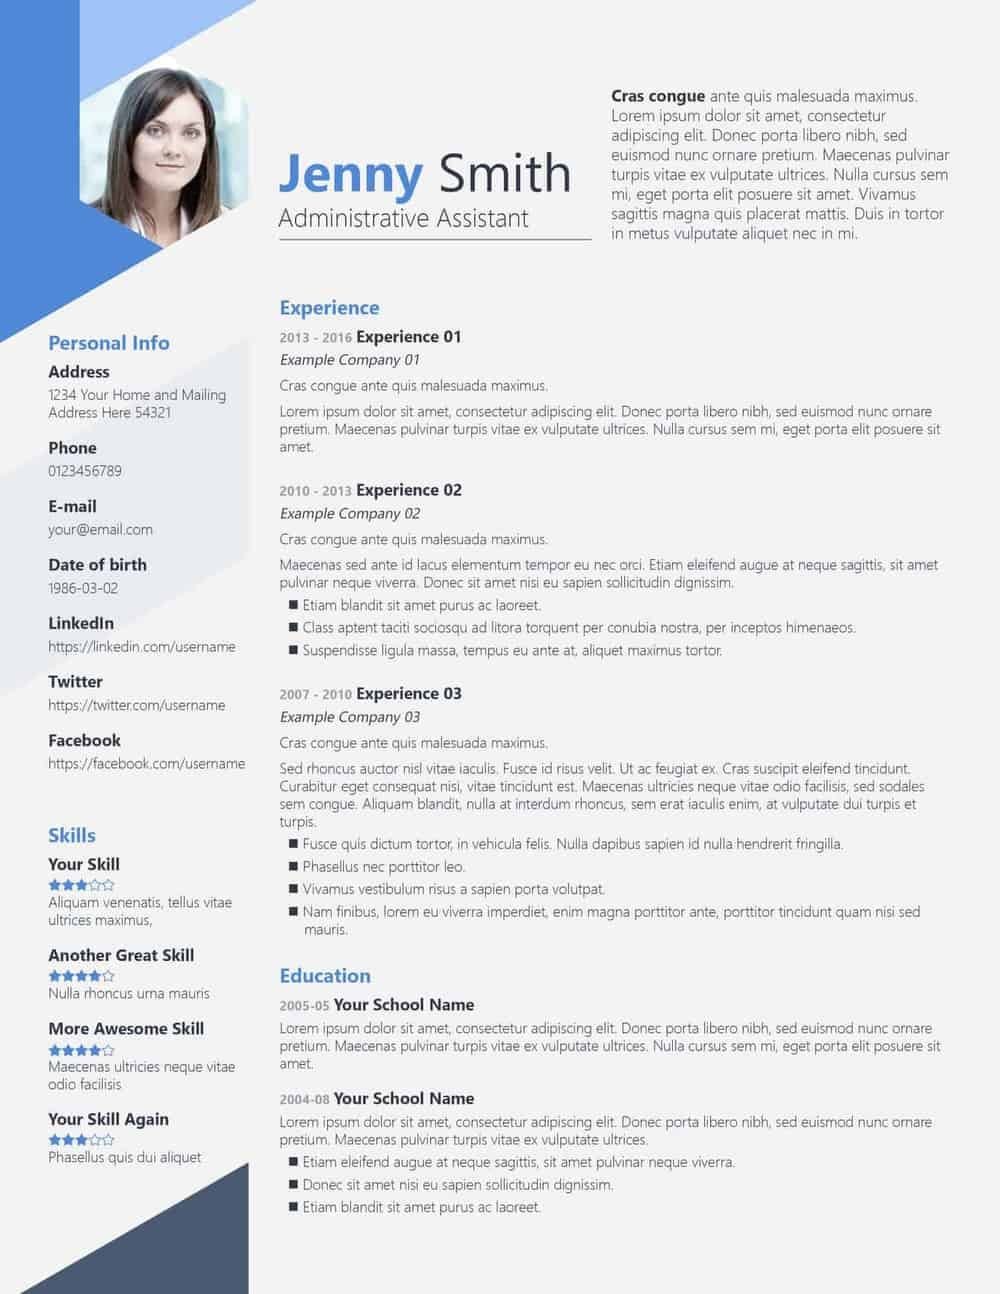 Free Psd Resume Templates On Vectogravic Design  Vectogravic Design